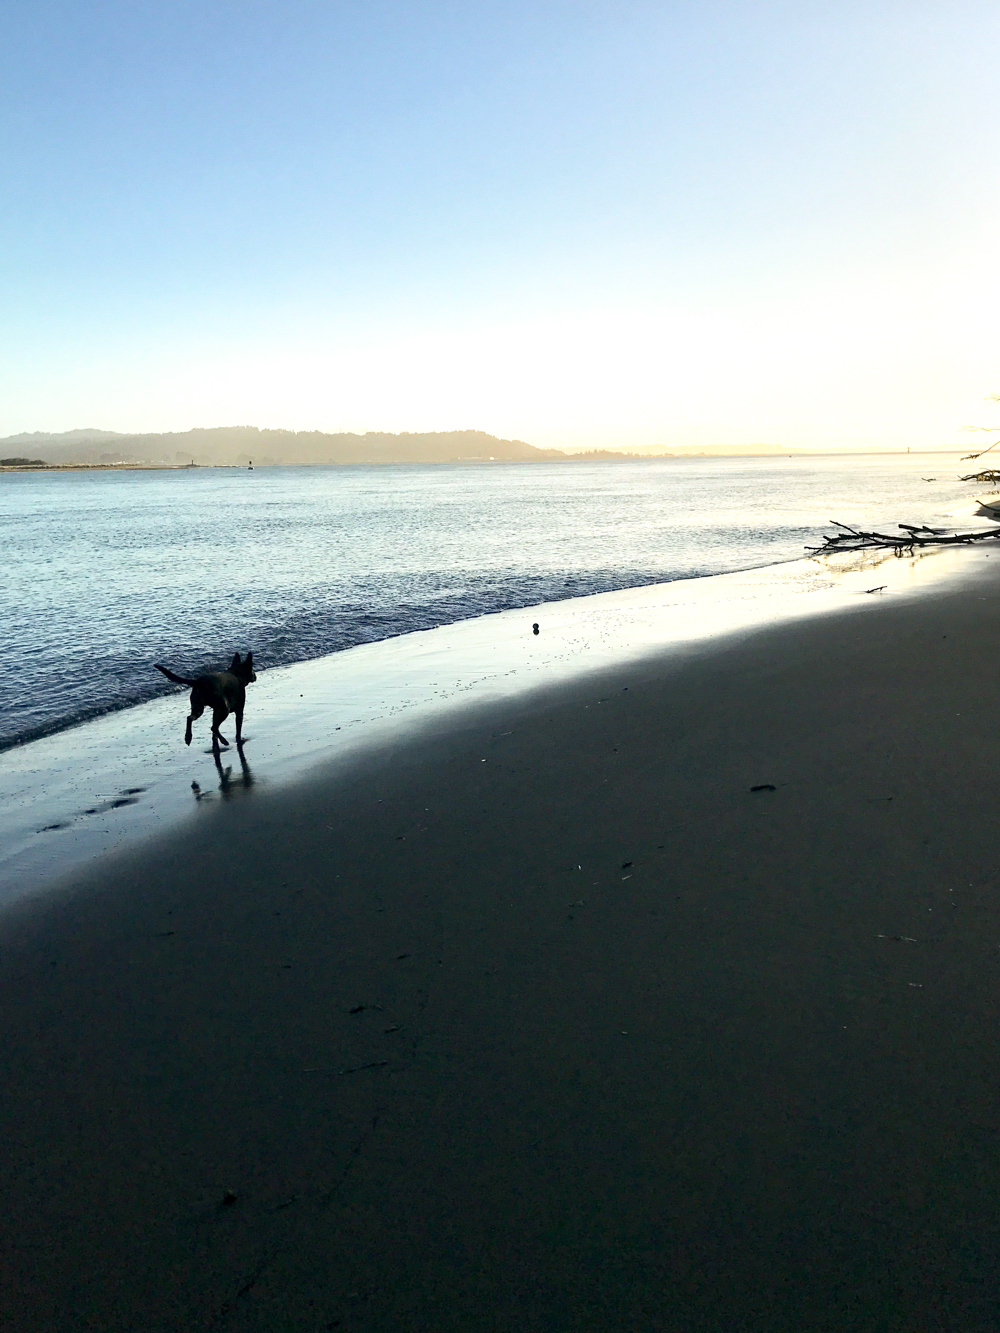 Pixel on the beach